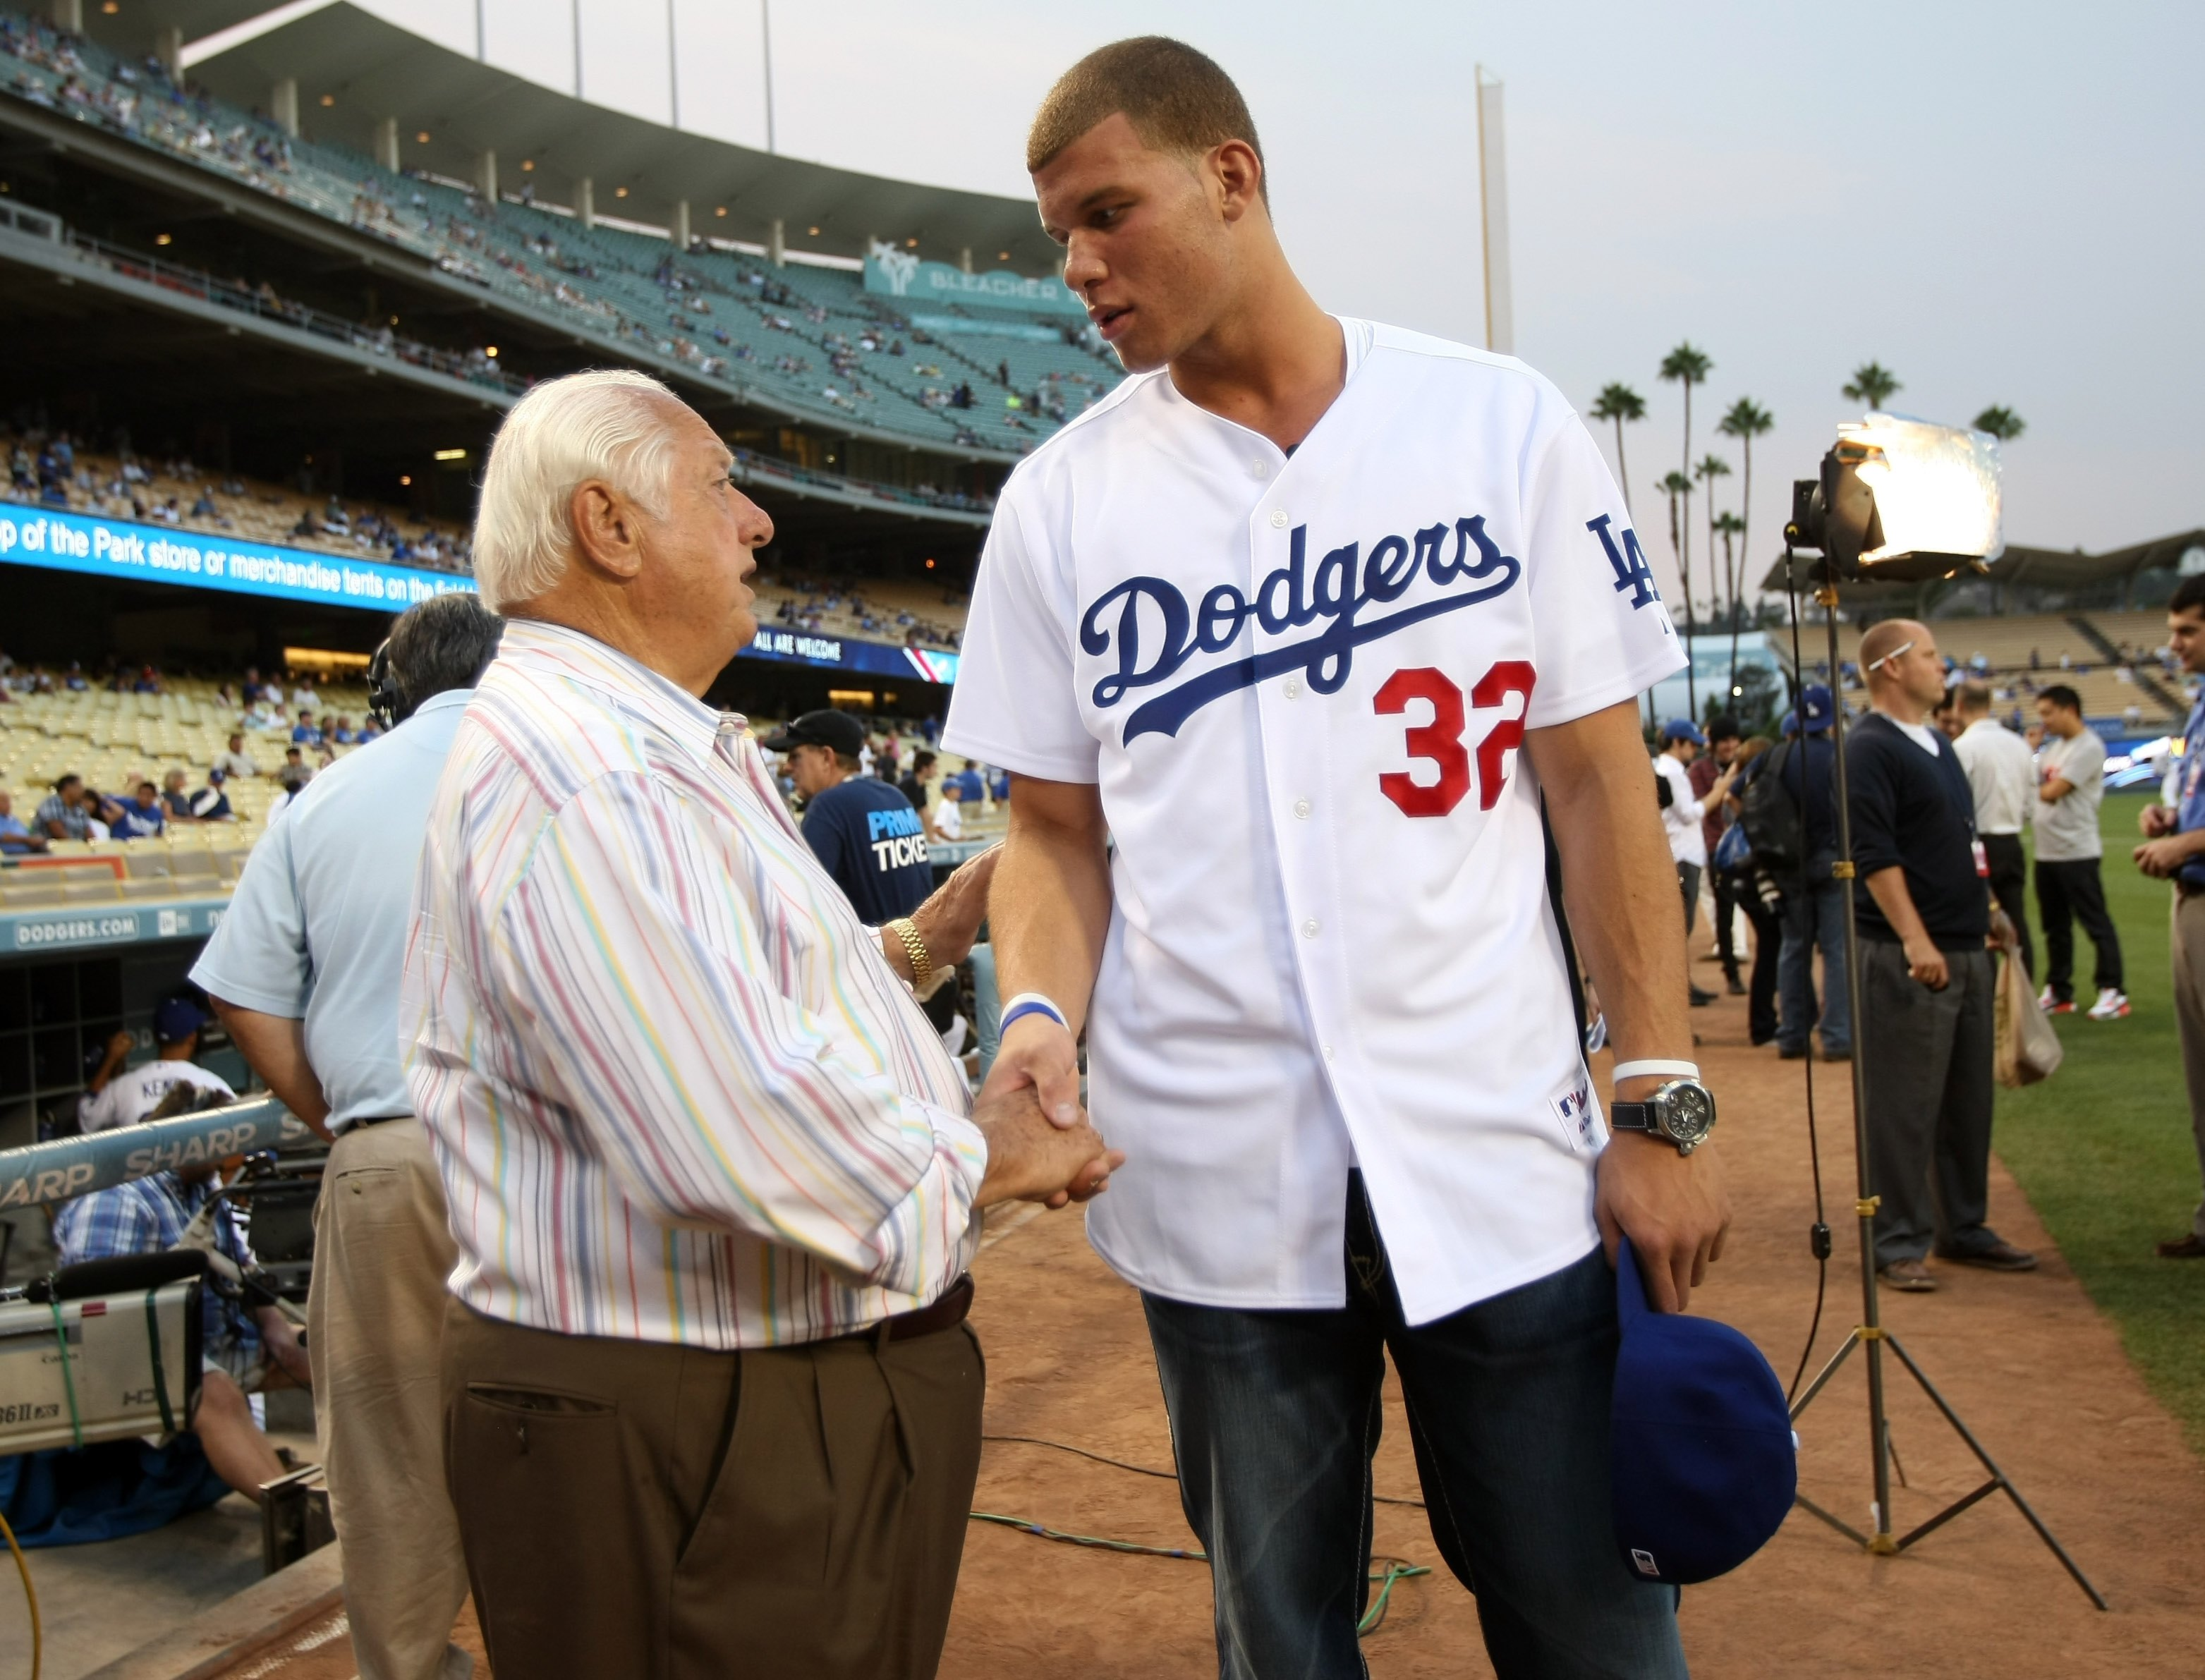 Donald Sterling Scandal Tommy Lasorda Says He Hopes V Stiviano Gets Hit With A Car Cbs News